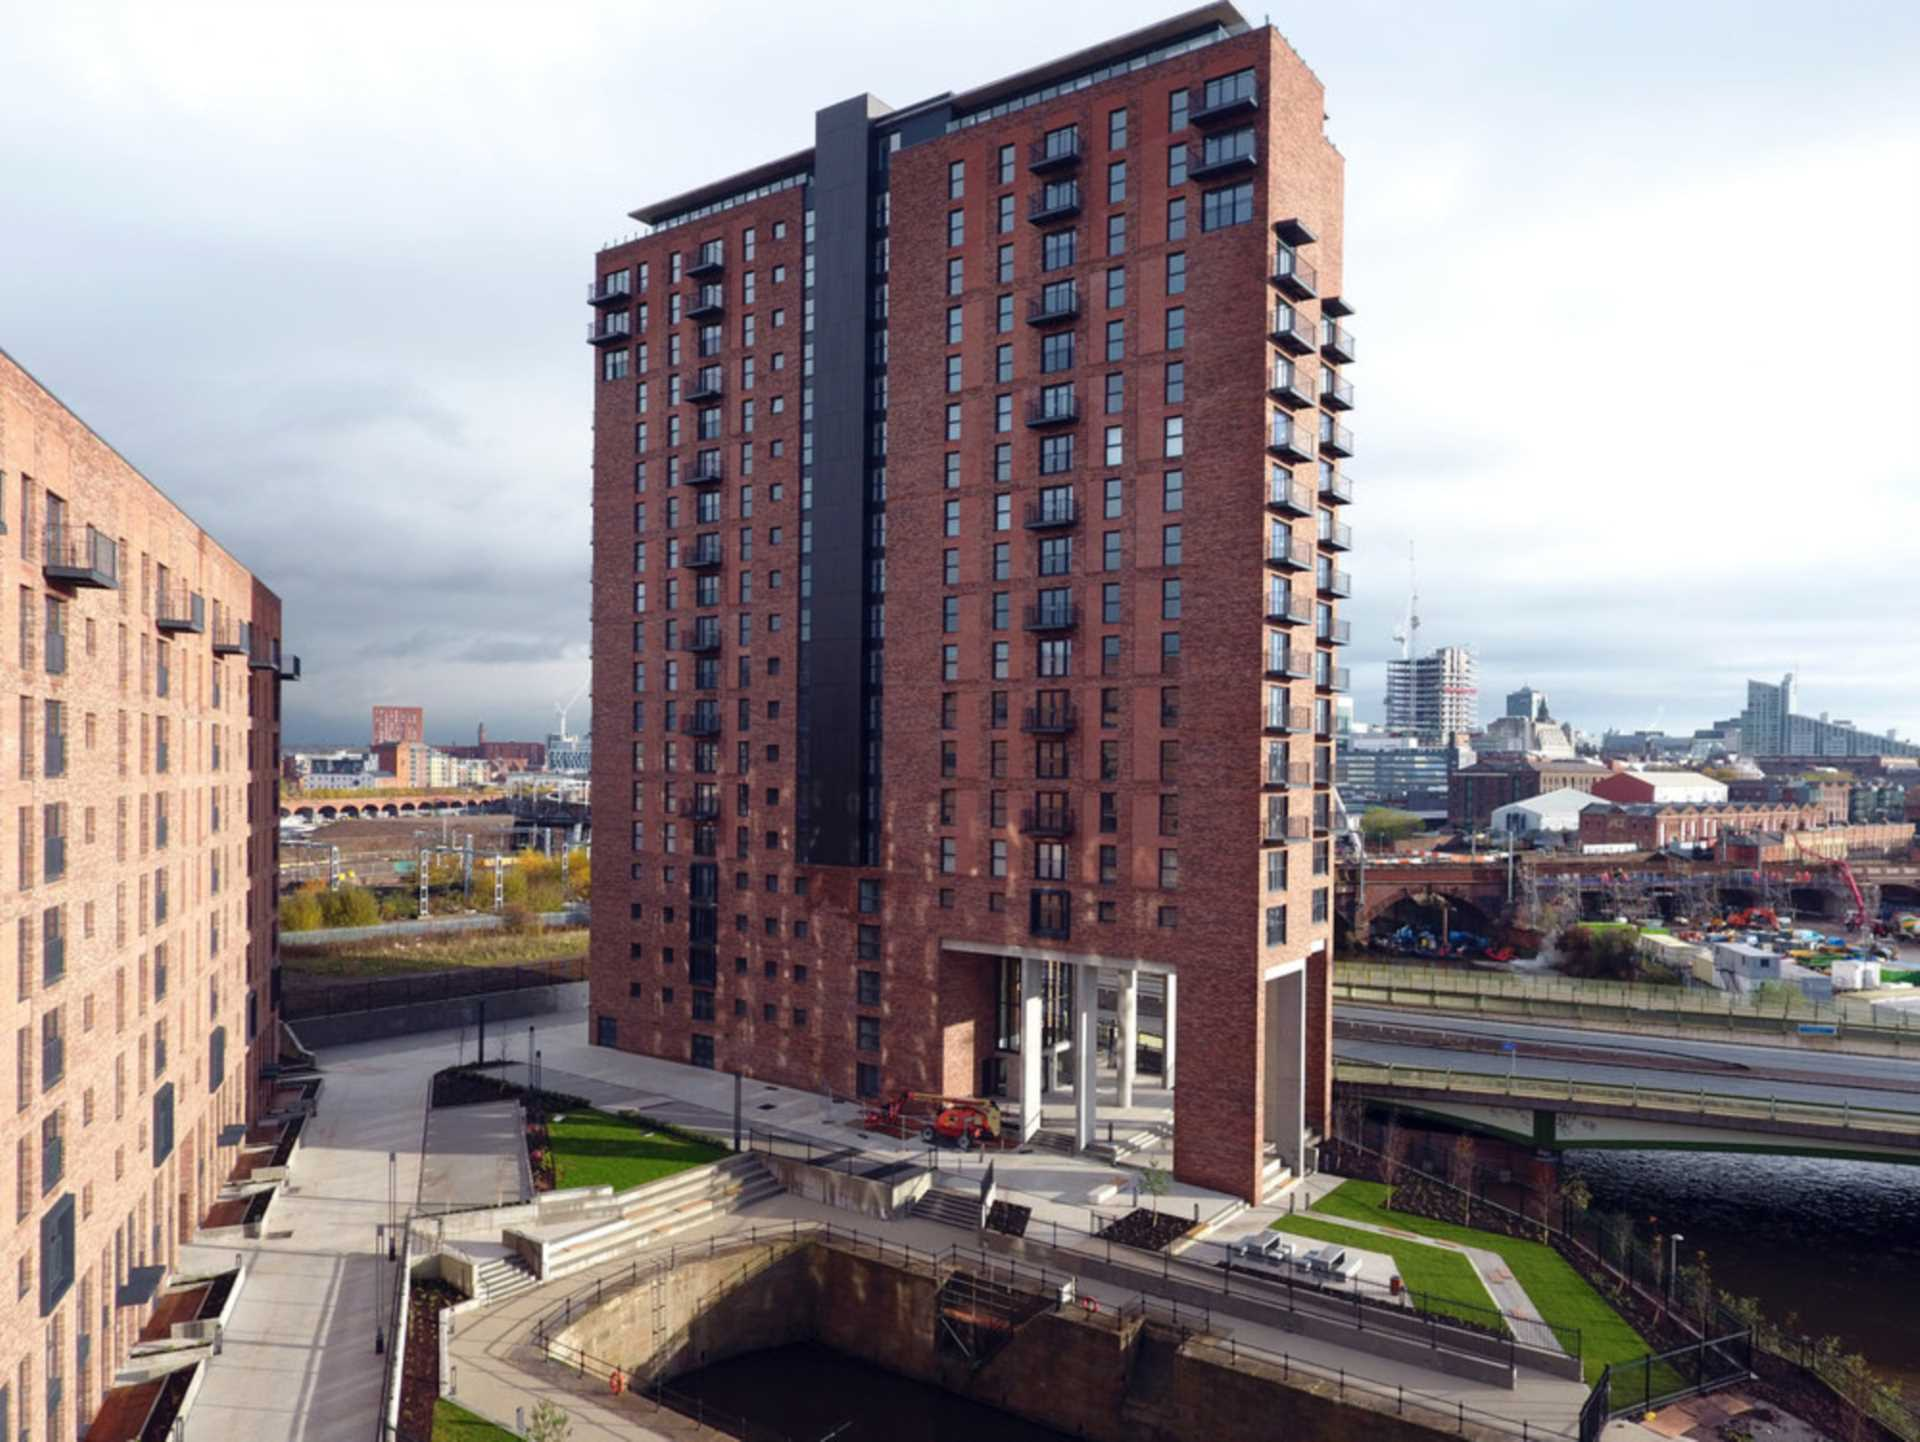 Two Bedroom Apartment Manchester